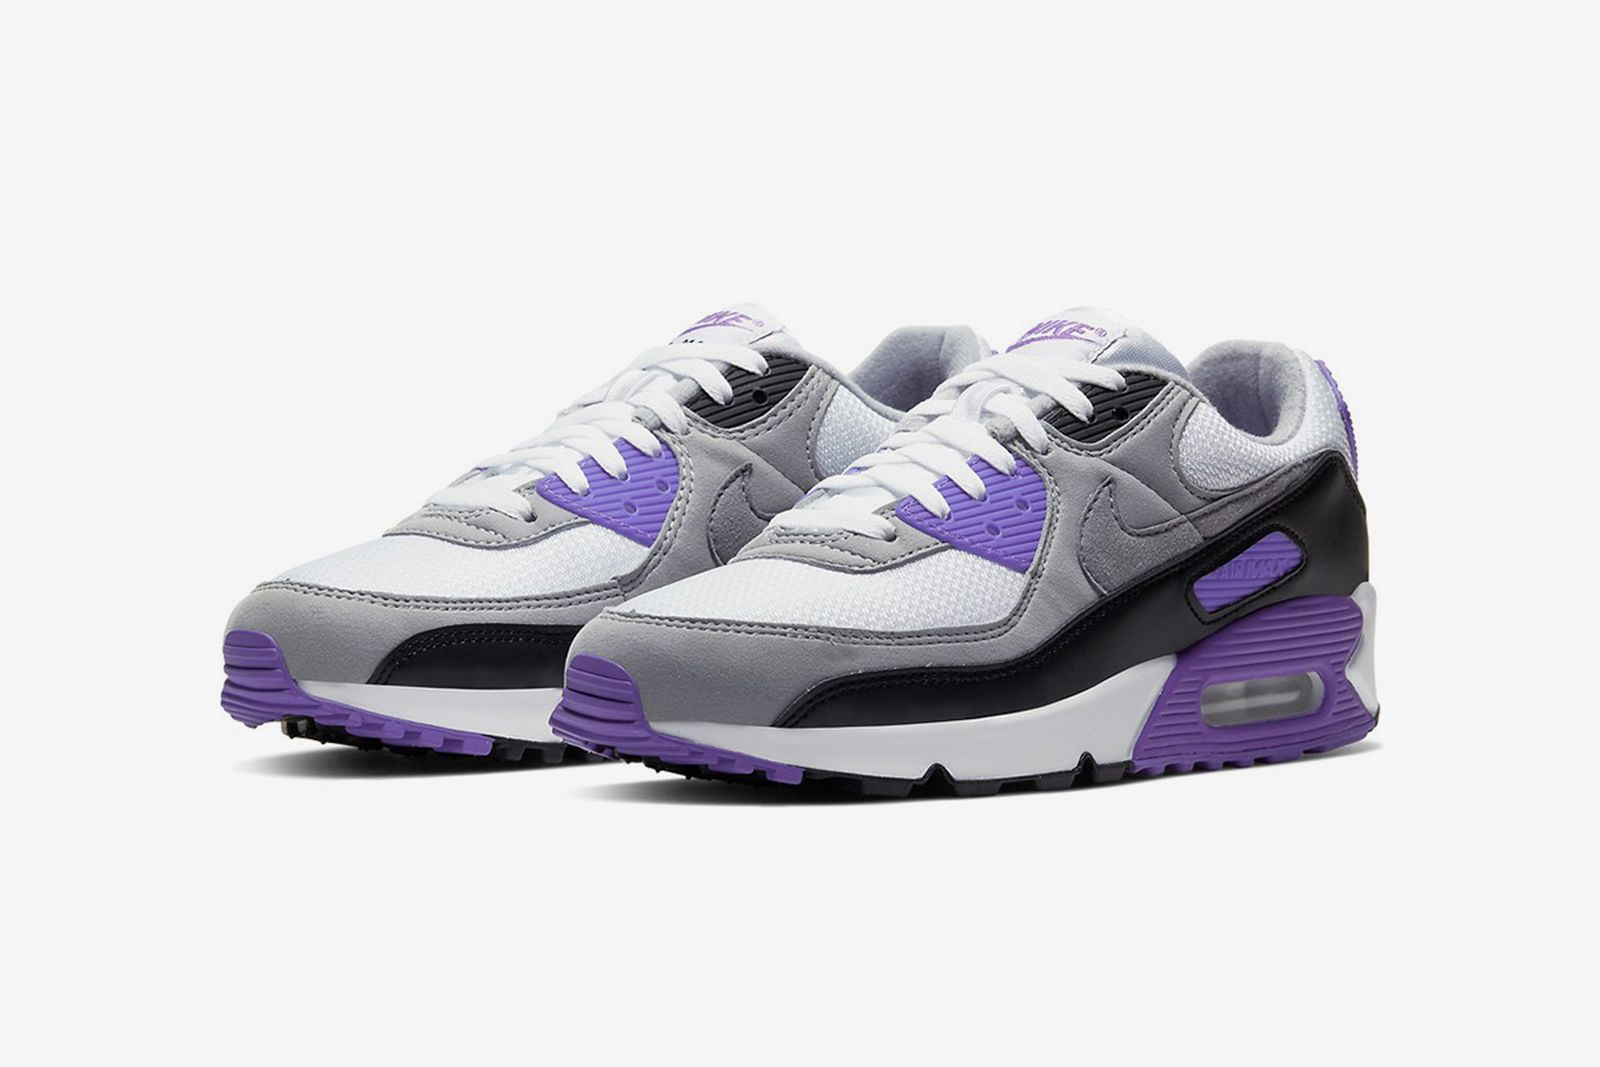 nike-air-max-90-30th-anniversary-colorways-release-date-price-1-08